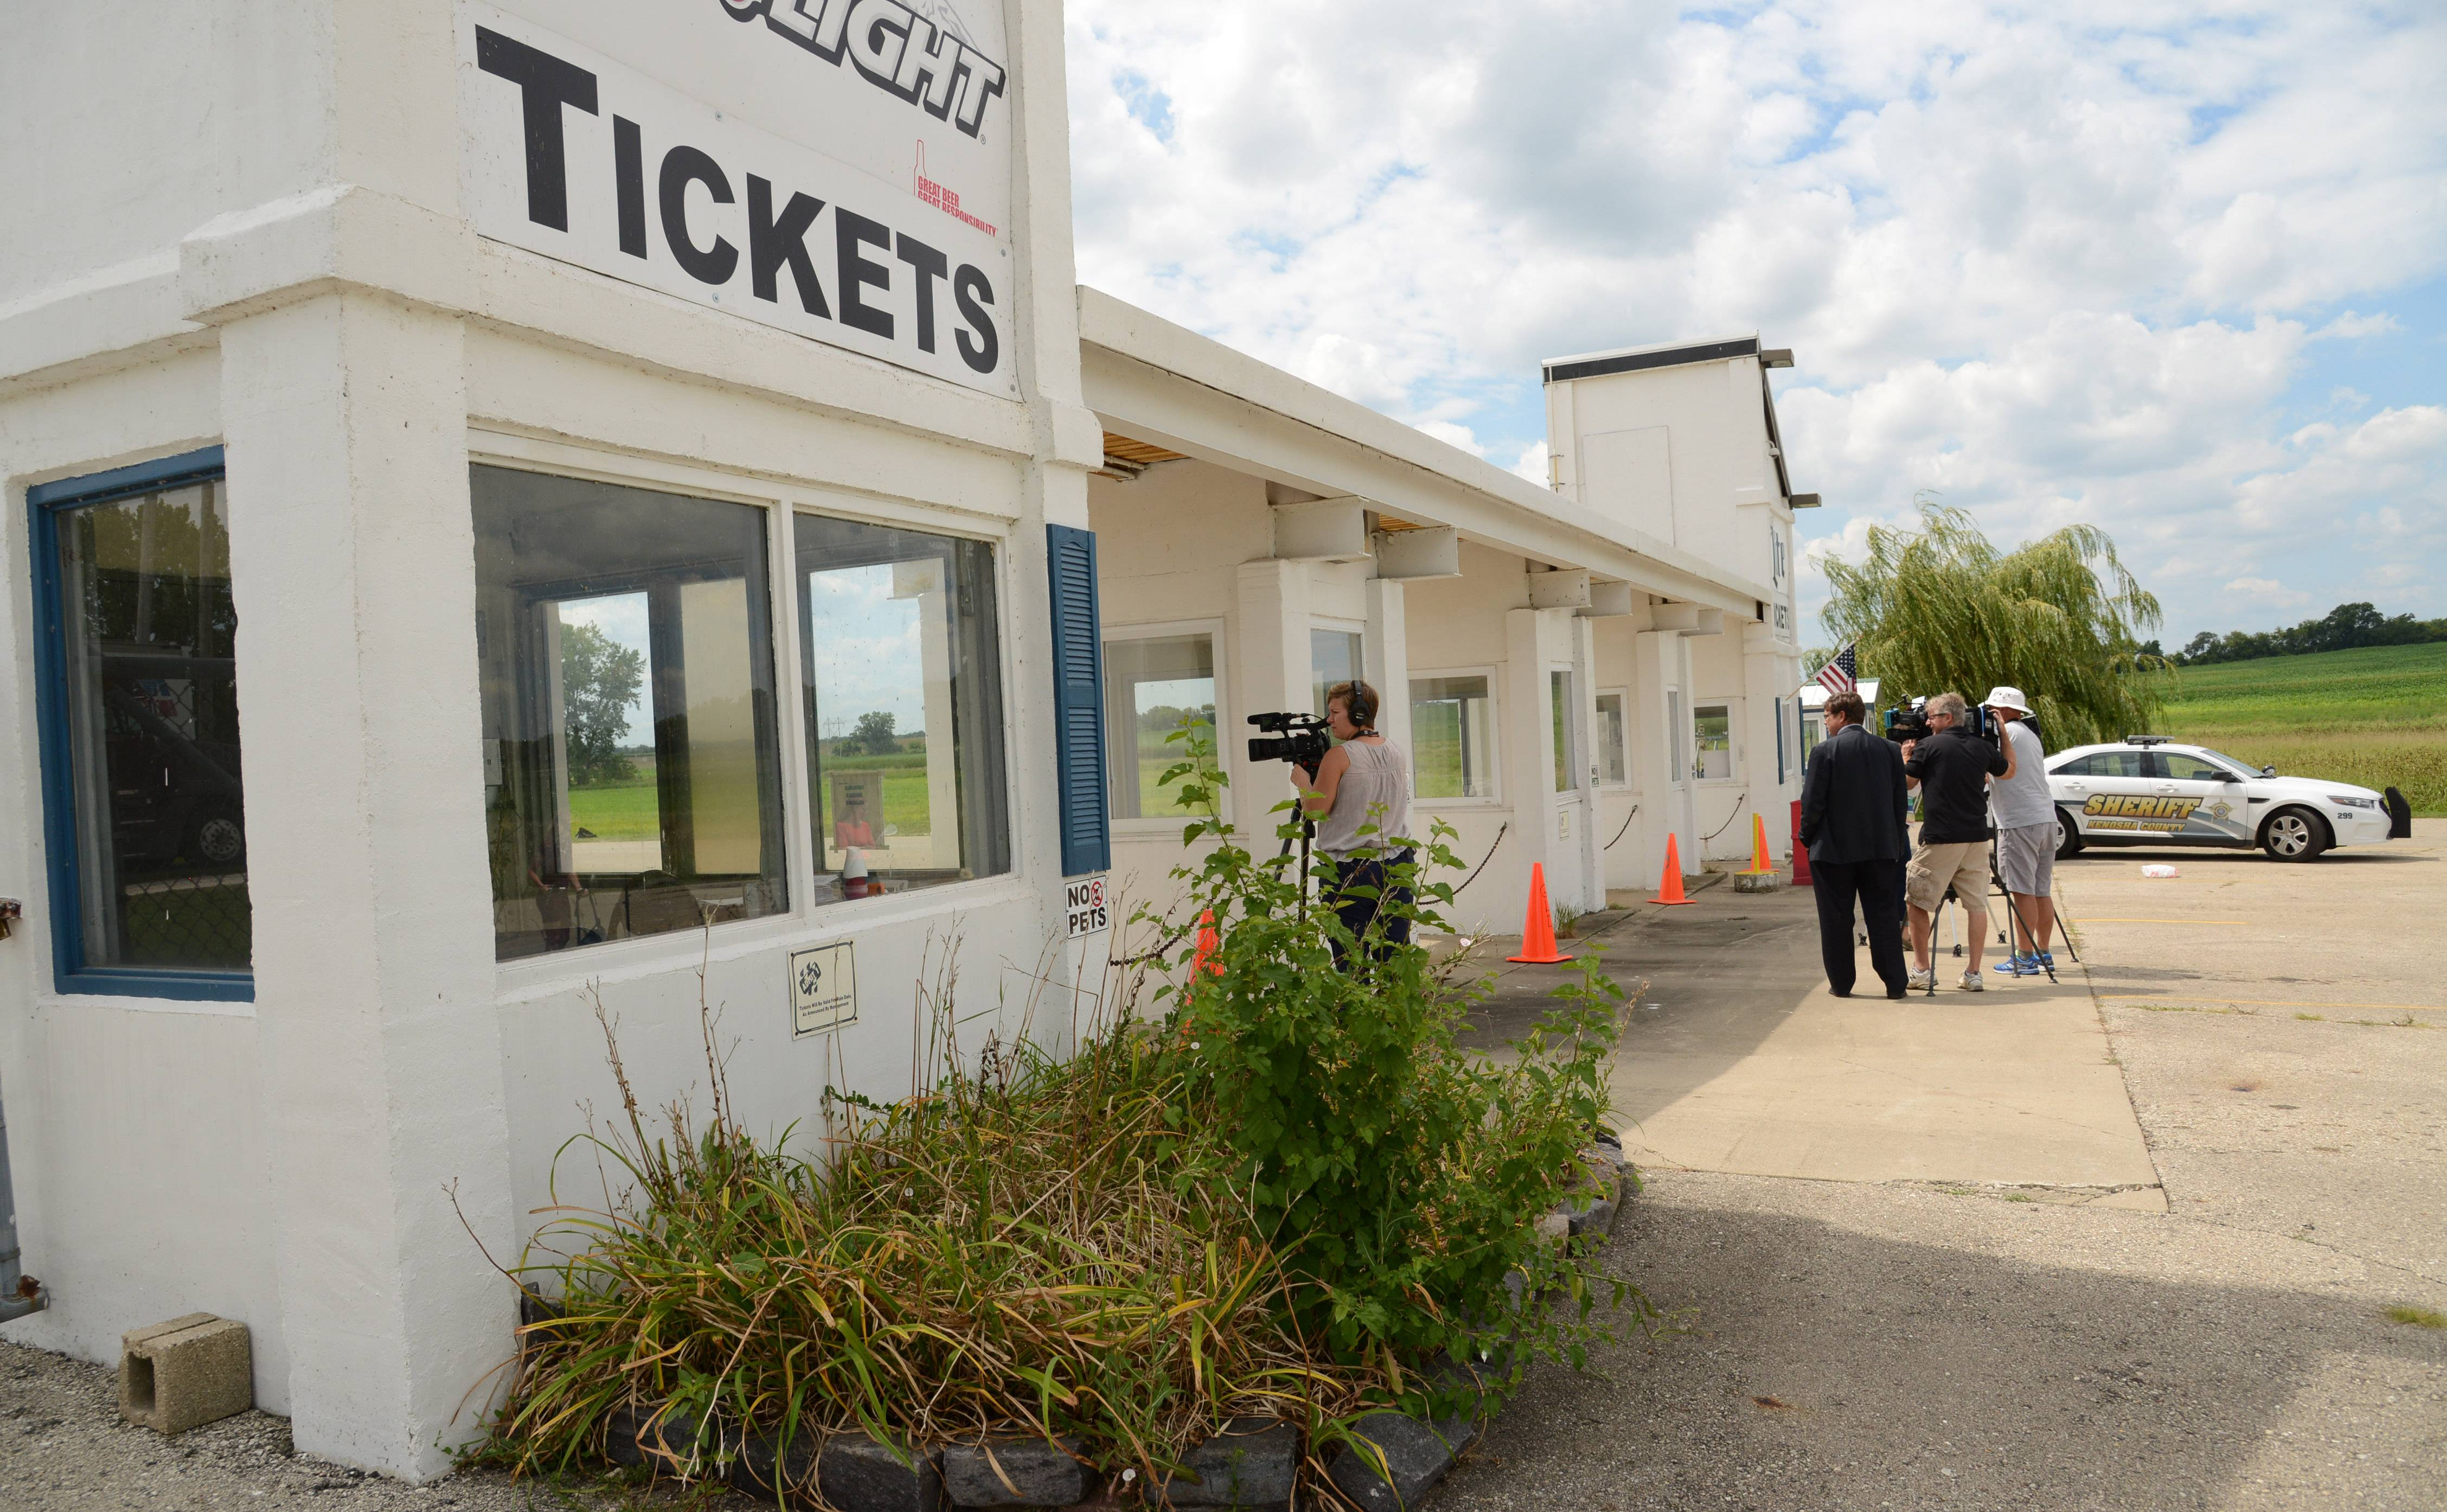 The main entrance to the Great Lakes Dragaway is guarded Monday by Kenosha County sheriff's deputies after Sunday night's shooting.